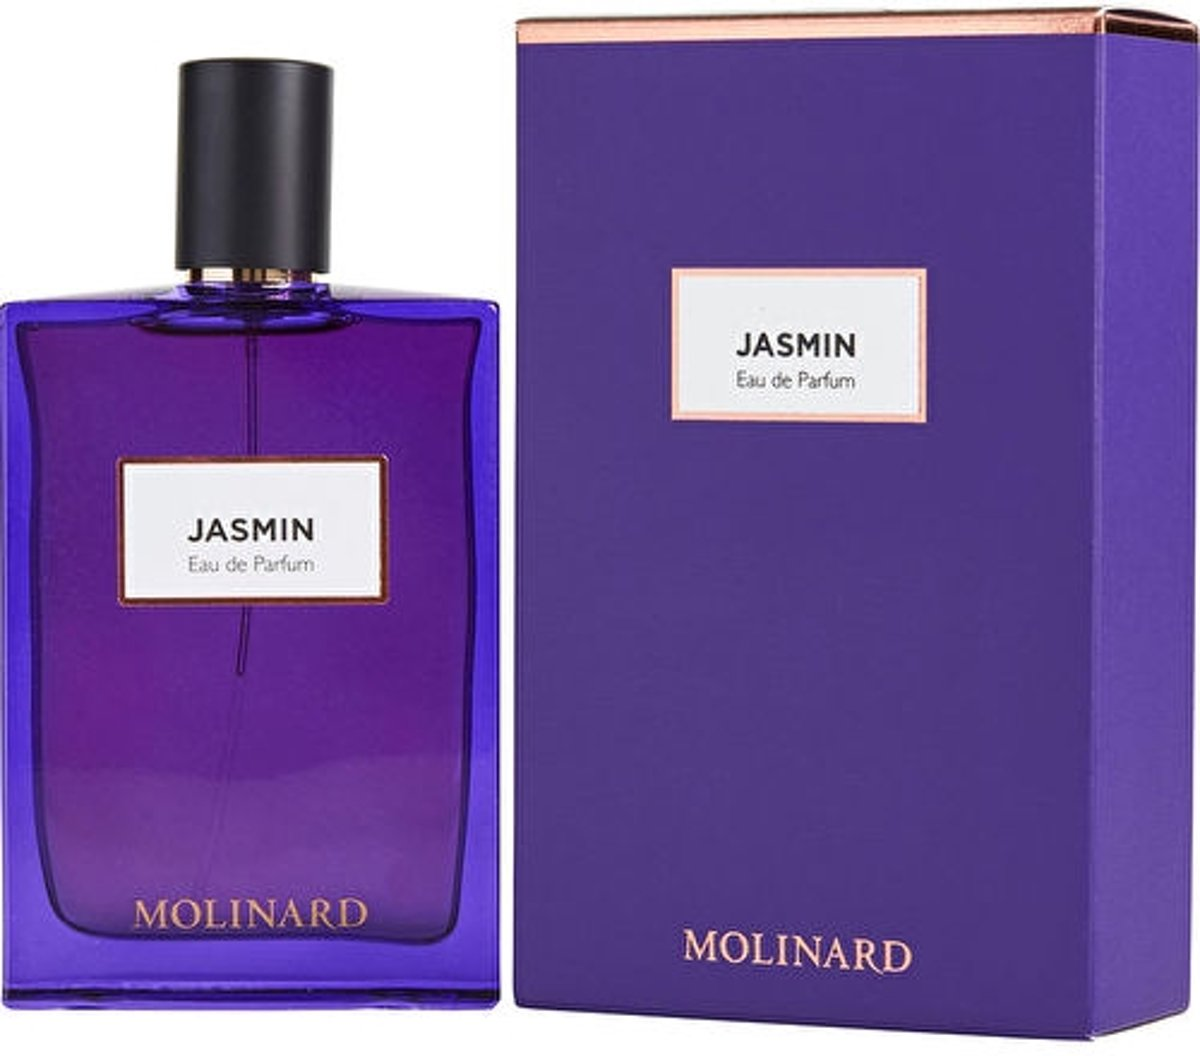 Molinard Jasmin By Molinard Eau De Parfum Spray 75 ml - Fragrances For Women